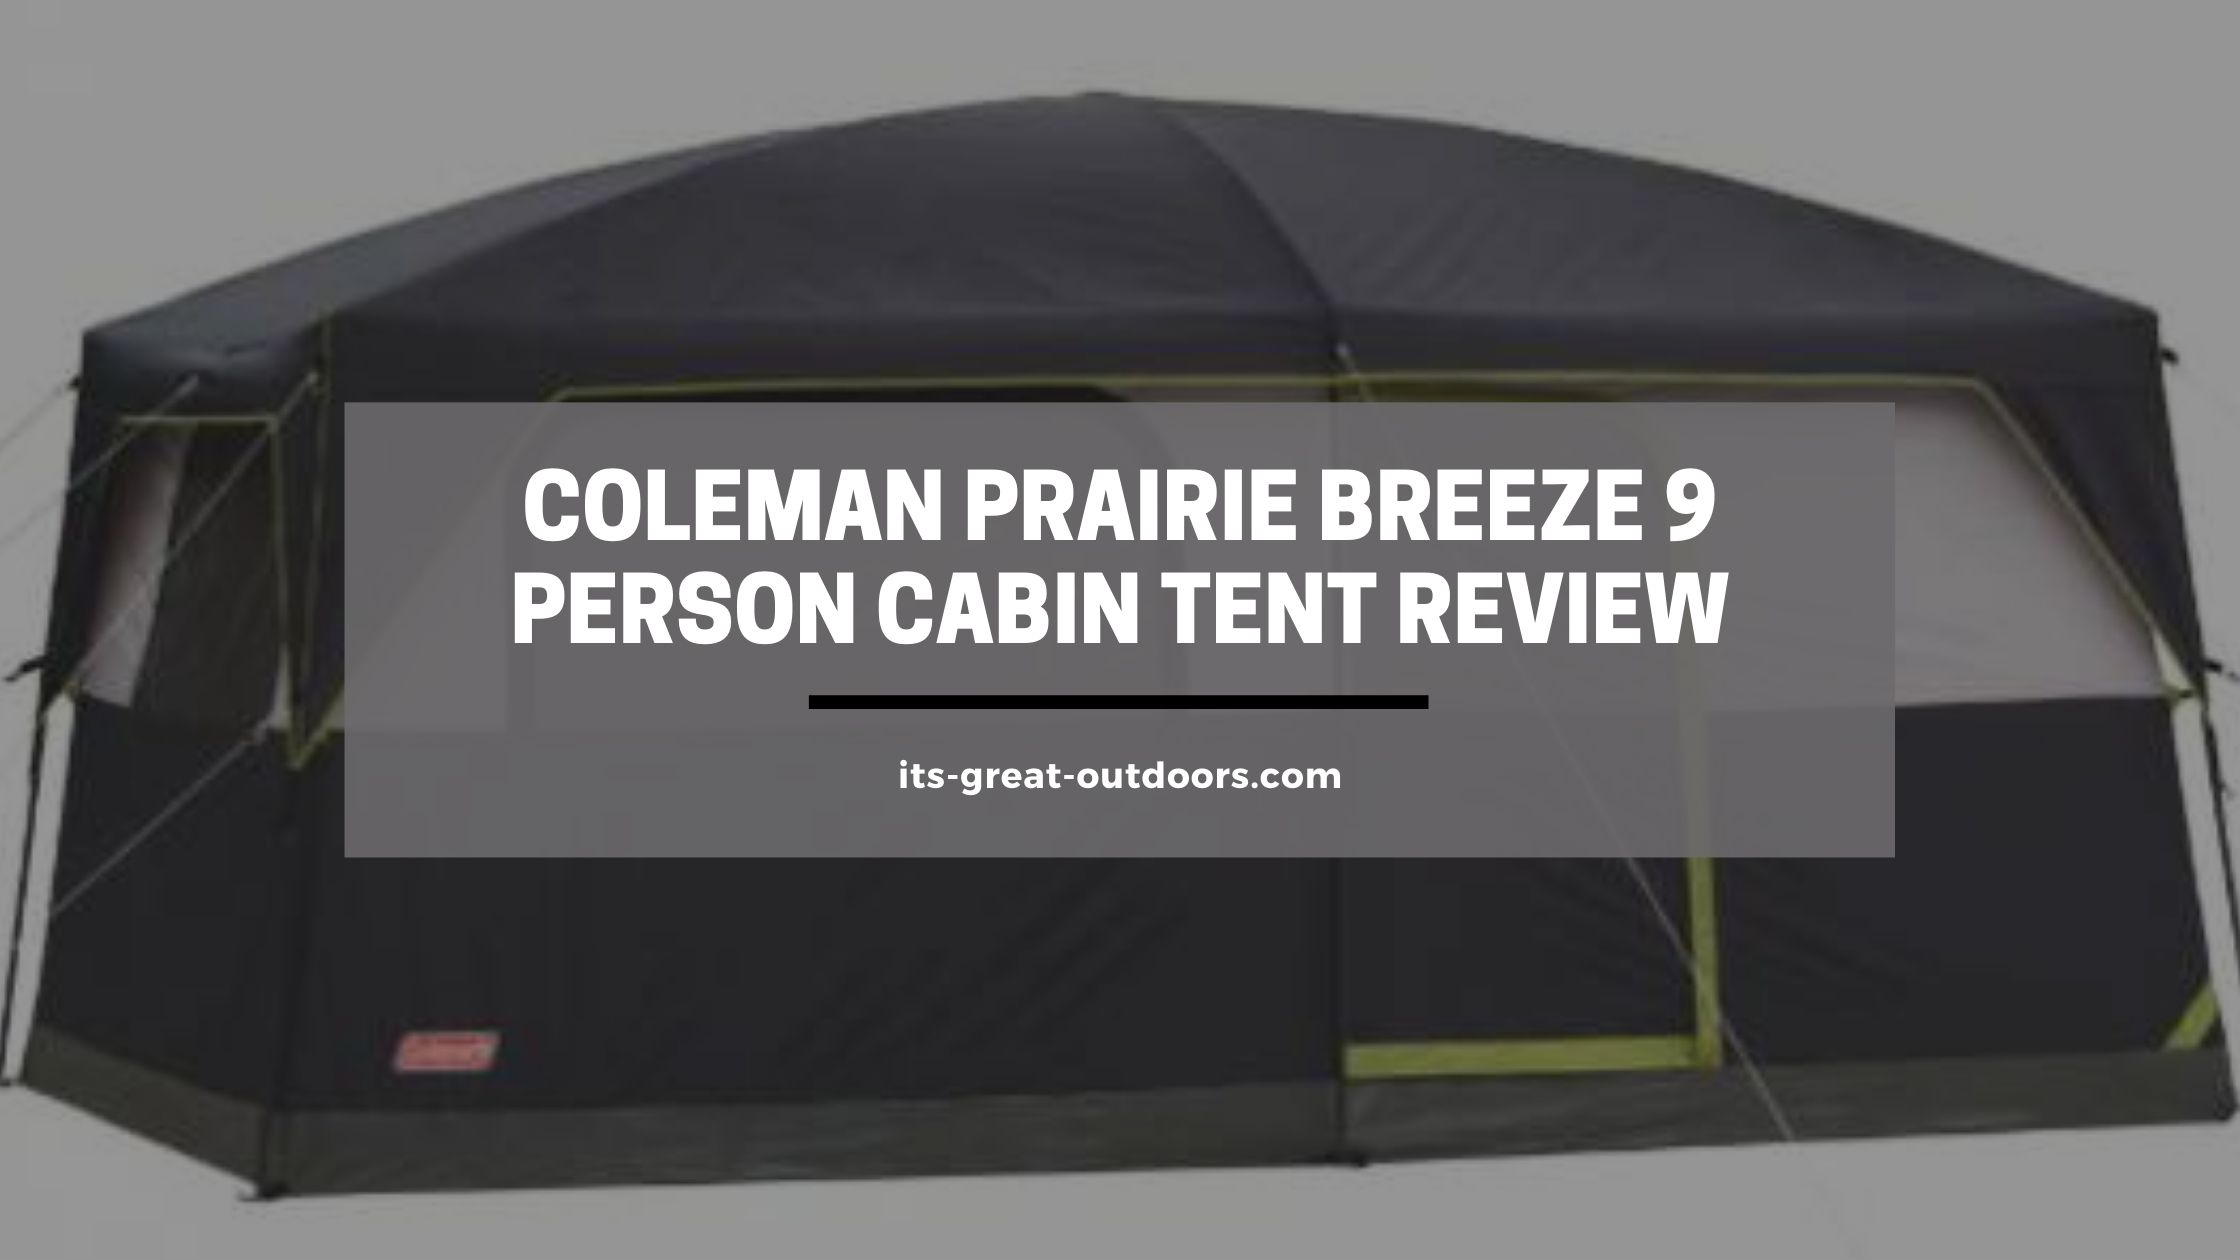 Coleman Prairie Breeze 9 Person Cabin Tent Review